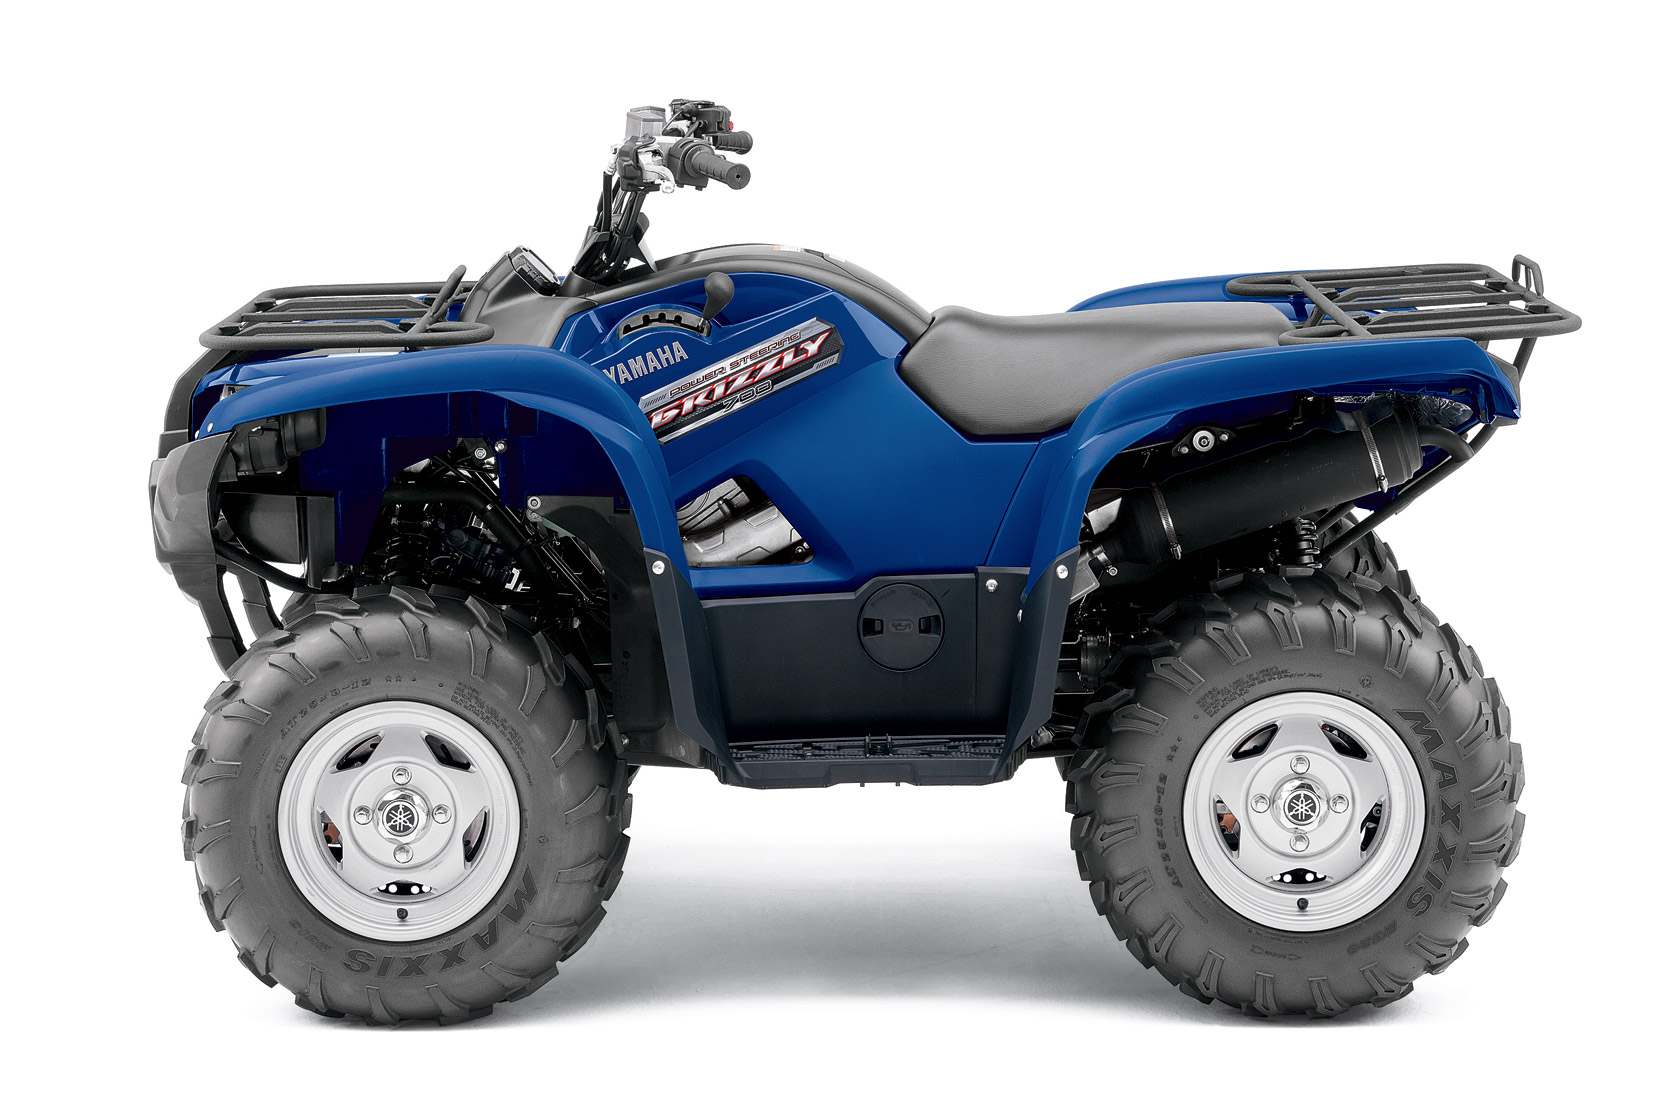 2012 yamaha grizzly 700 fi auto 4x4 eps review. Black Bedroom Furniture Sets. Home Design Ideas